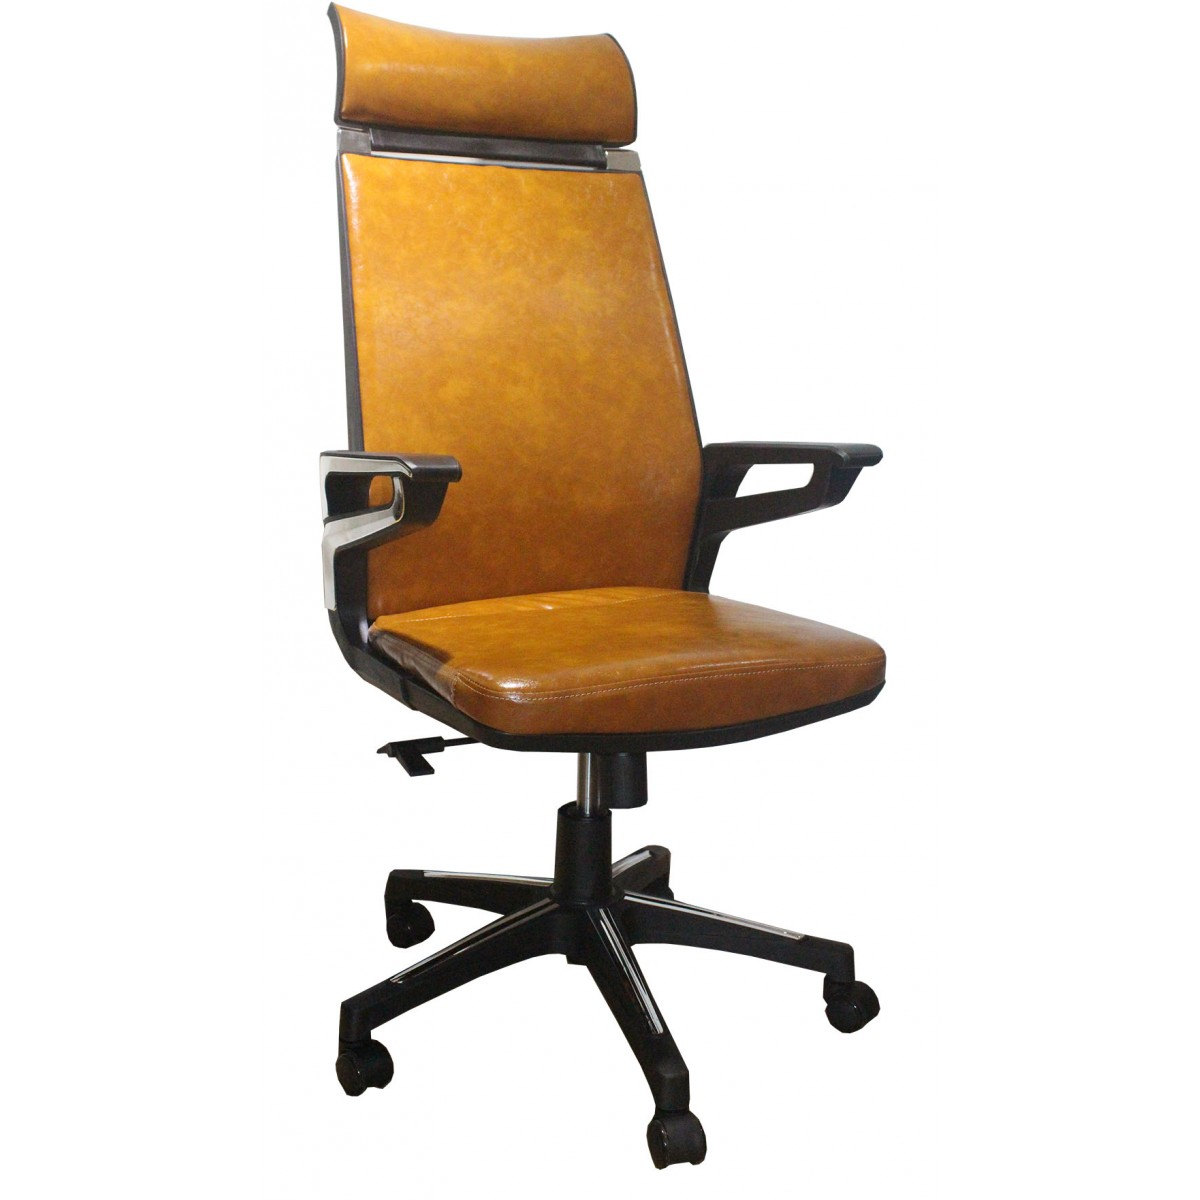 Sitting Vision Fauteuils.Executive Office Chair Fd A319a02